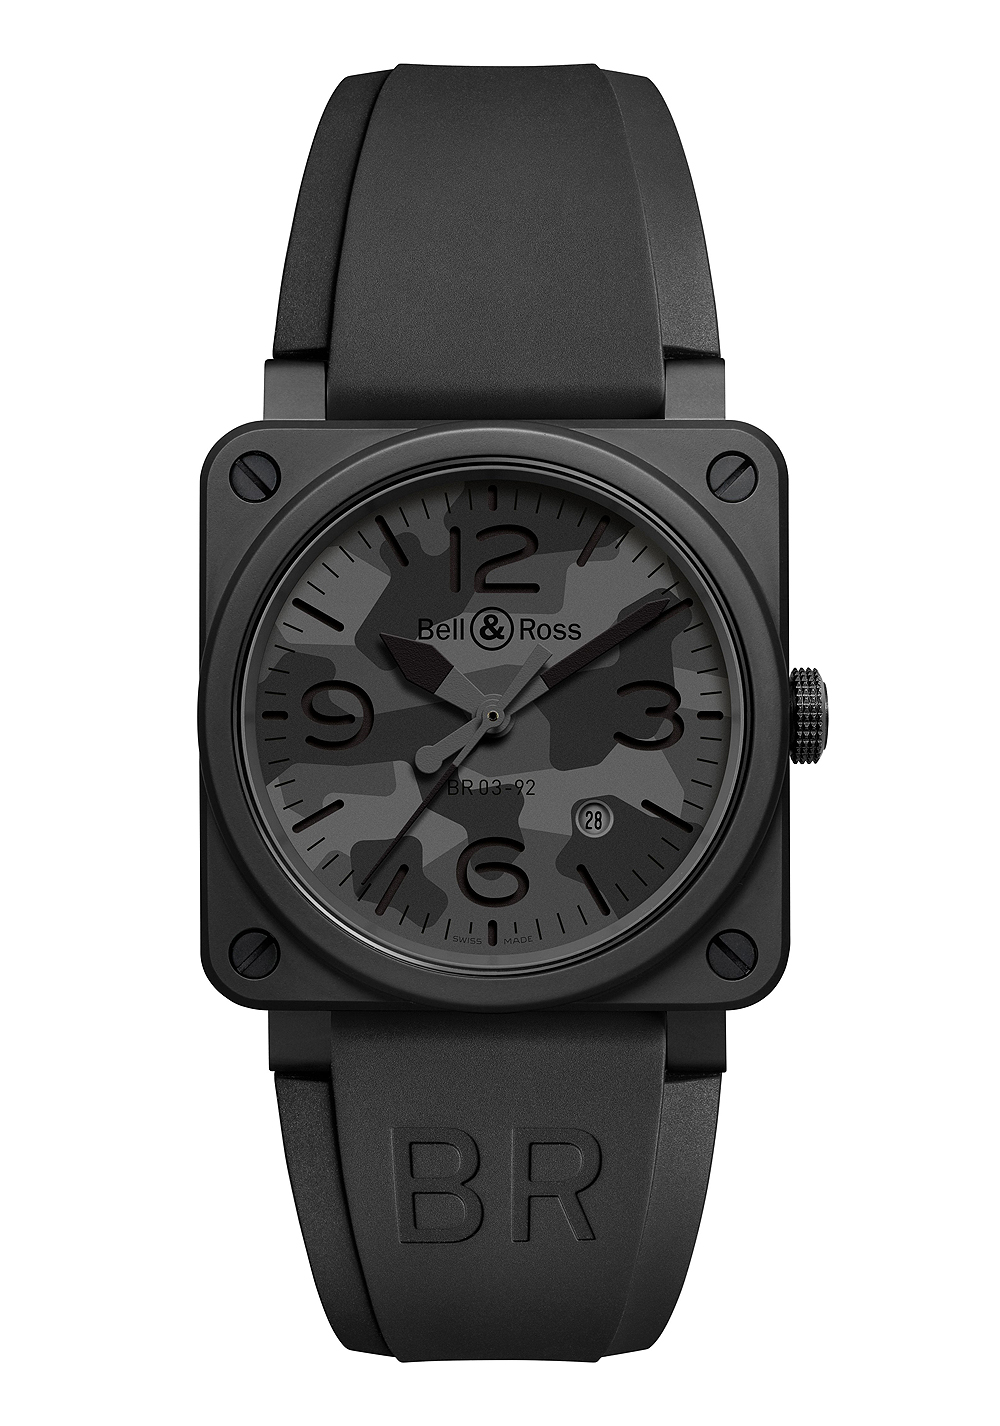 A Luxurious Version Of Bell & Ross BR 03-92 Black Camo Replica